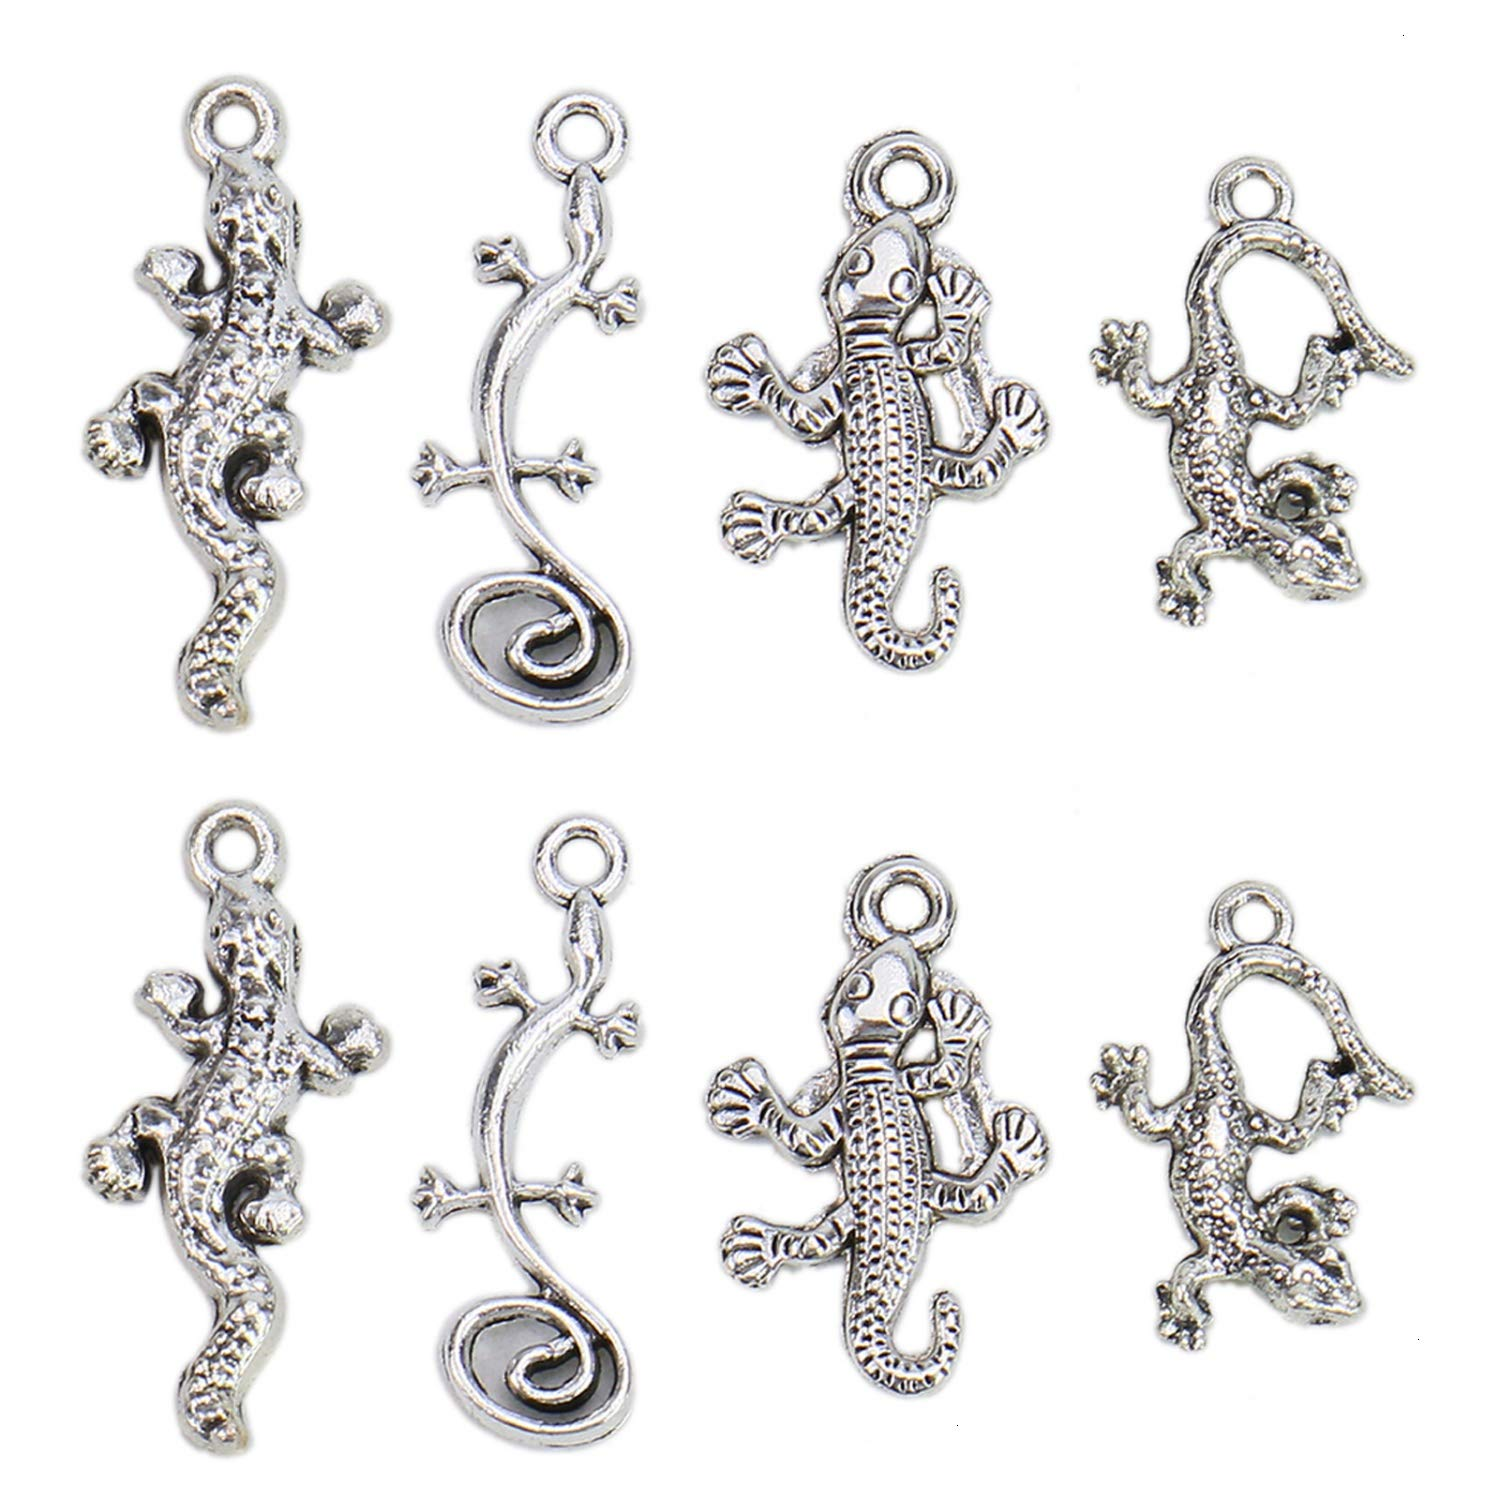 Monrocco 16 Pcs 4 Styles Antique Silver Animal Lizard Gecko Charms - Zinc Alloy Desert Theme Animal Charms Pendants Jewelry Findings Making Accessory